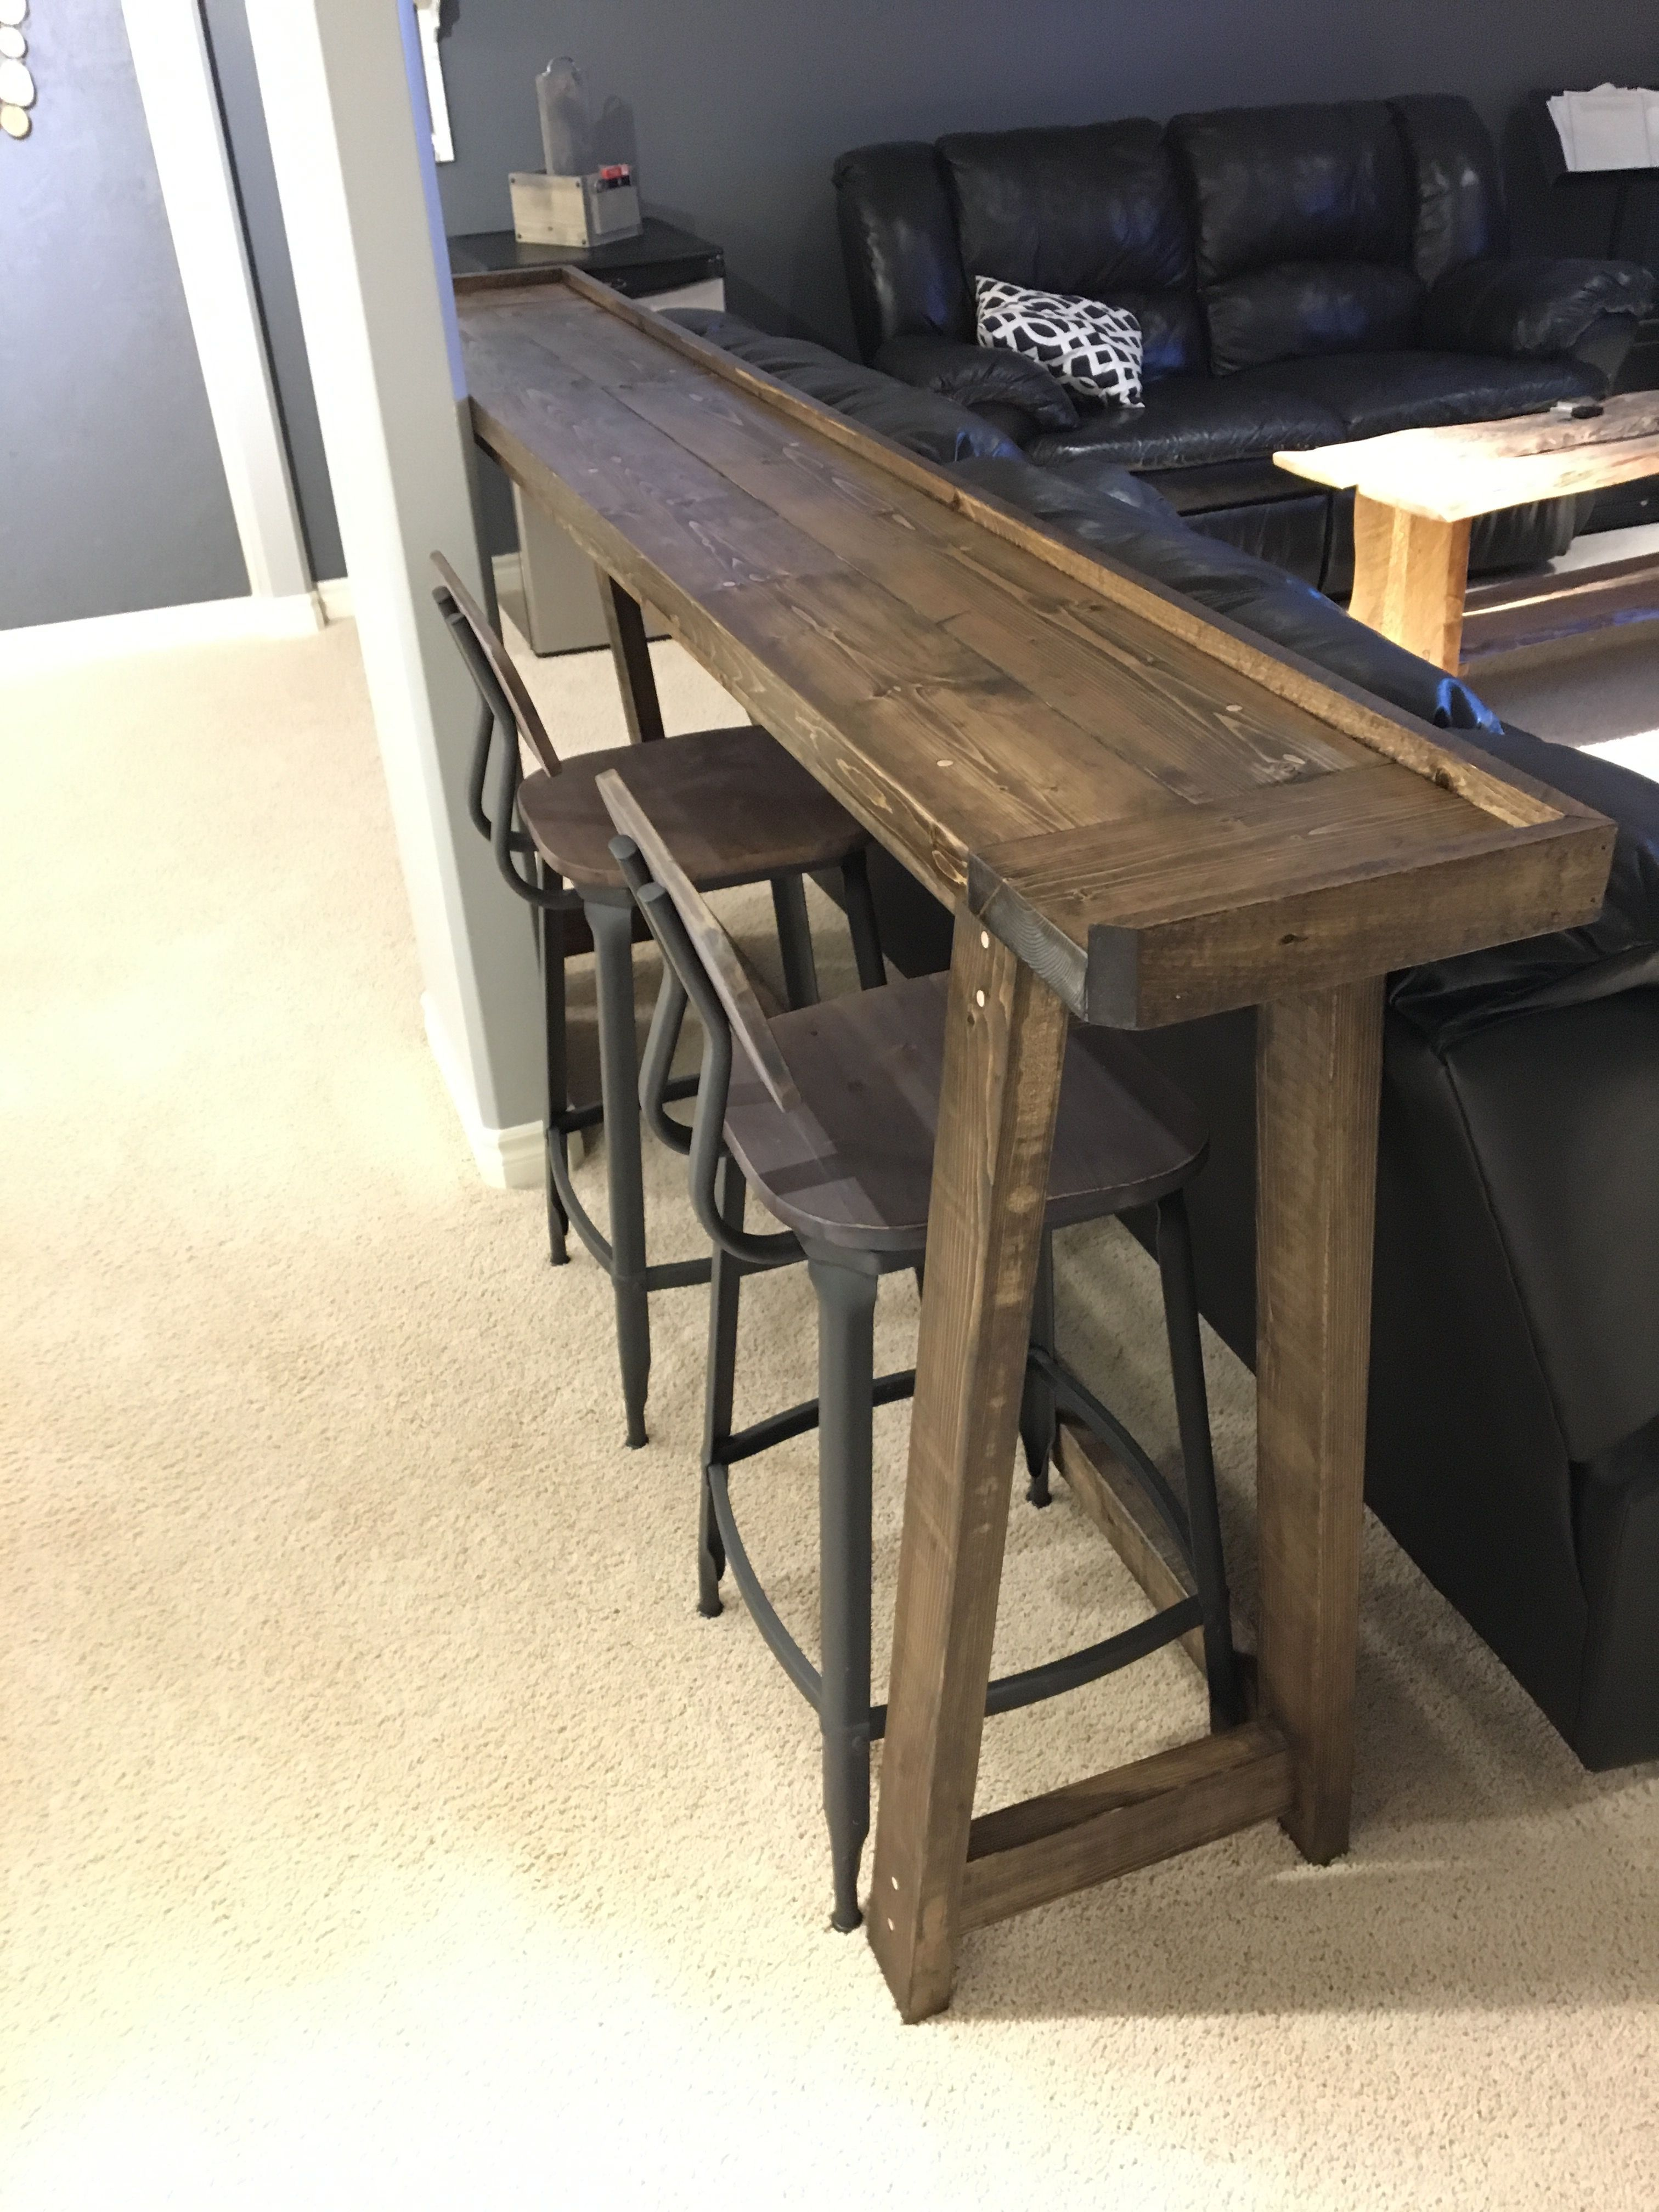 Bar Height Table Behind The Couch Fixupbasement Rec Room Decor Home Decor Home Diy